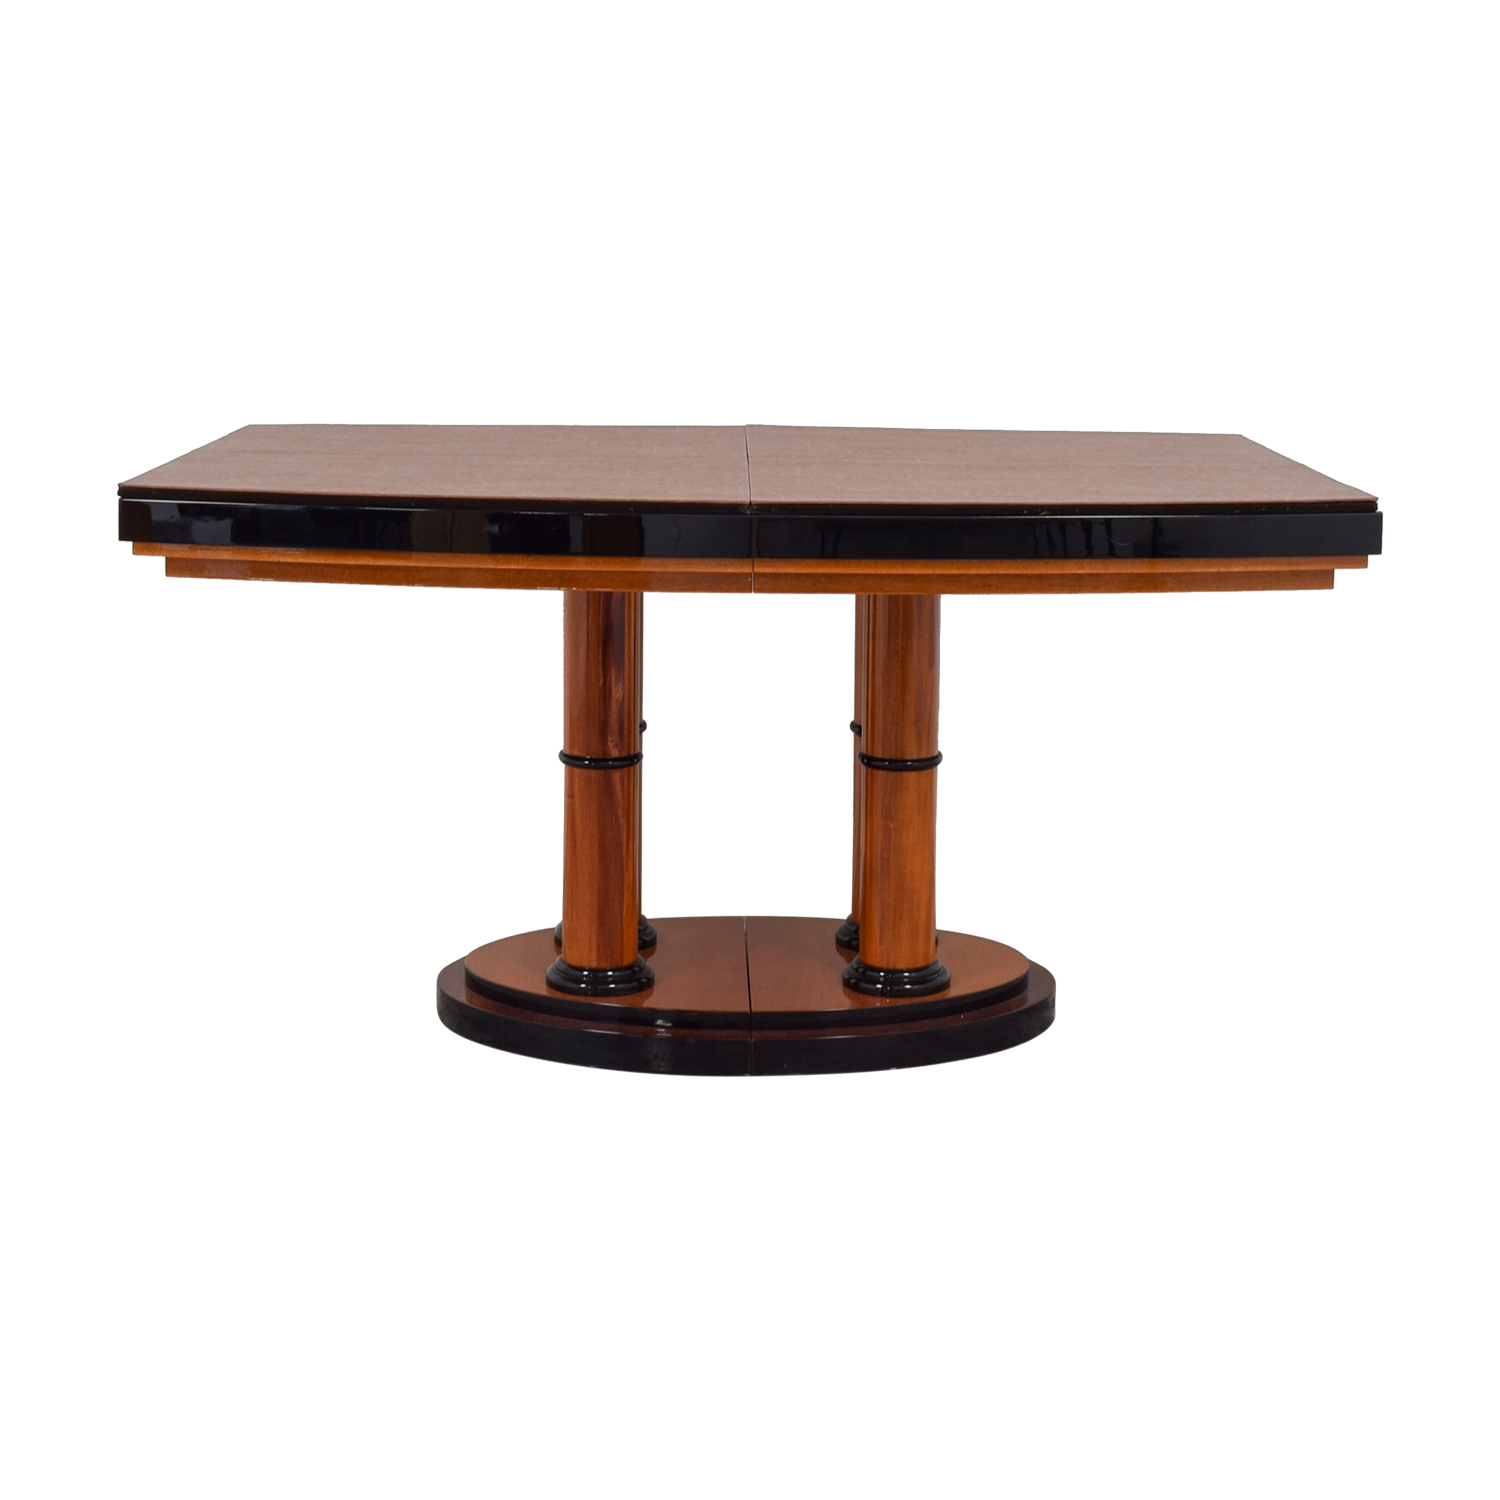 Manhattan Cabinetry Manhattan Cabinetry Custom Expandable Dining Table brown black trim